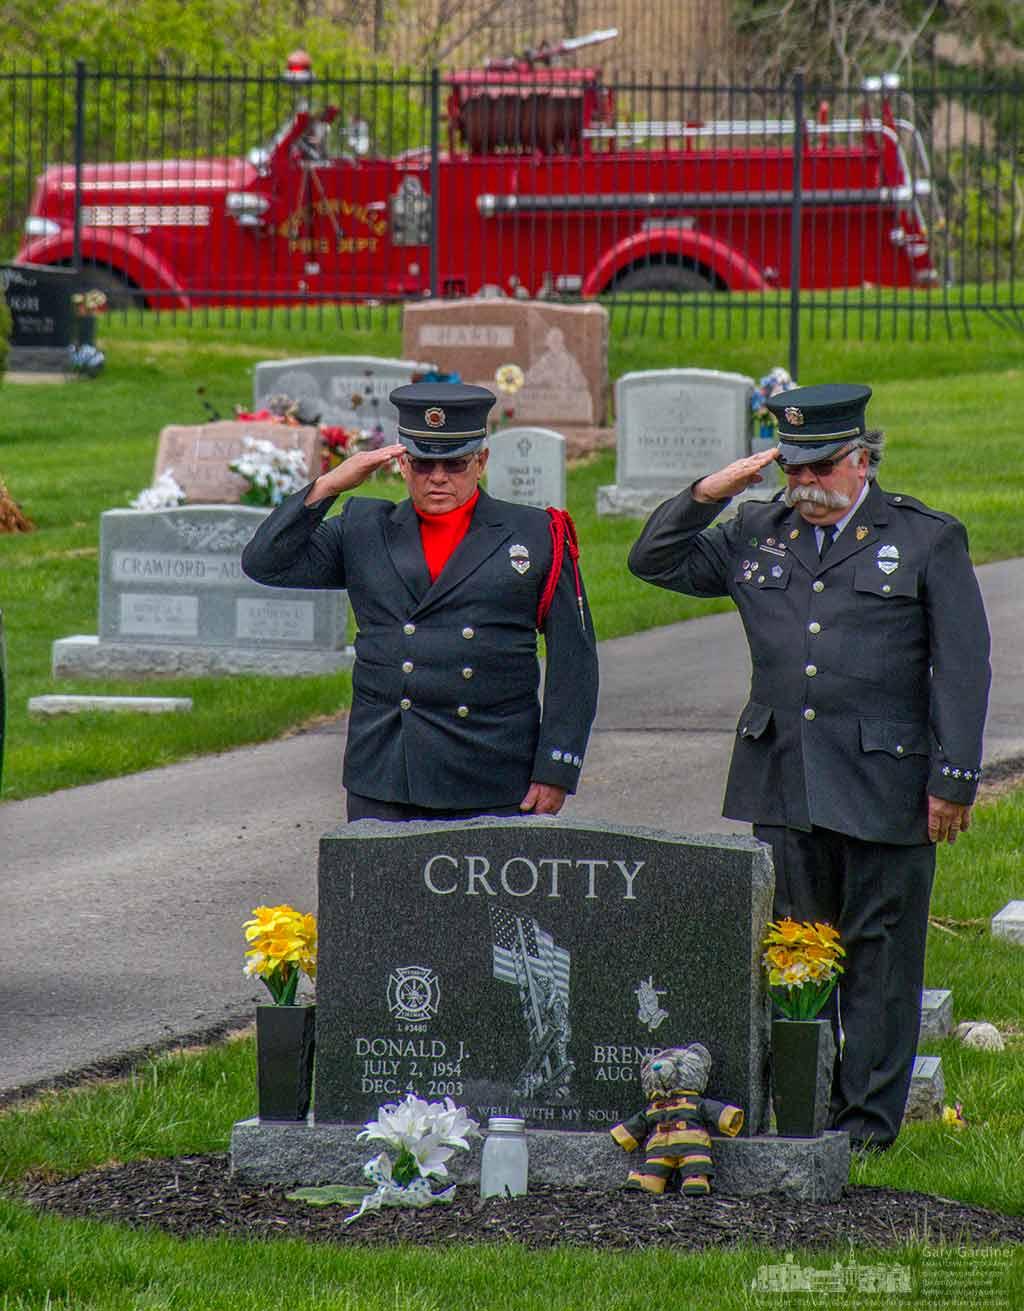 Retired fire fighters Bruce Barber, left, and Tom Ullom salute as they stand at the grave site of a Westerville firefighter who died in 2003. The two were part of an honor guard for another fire fighter buried Wednesday. My Final Photo for April 6, 2016